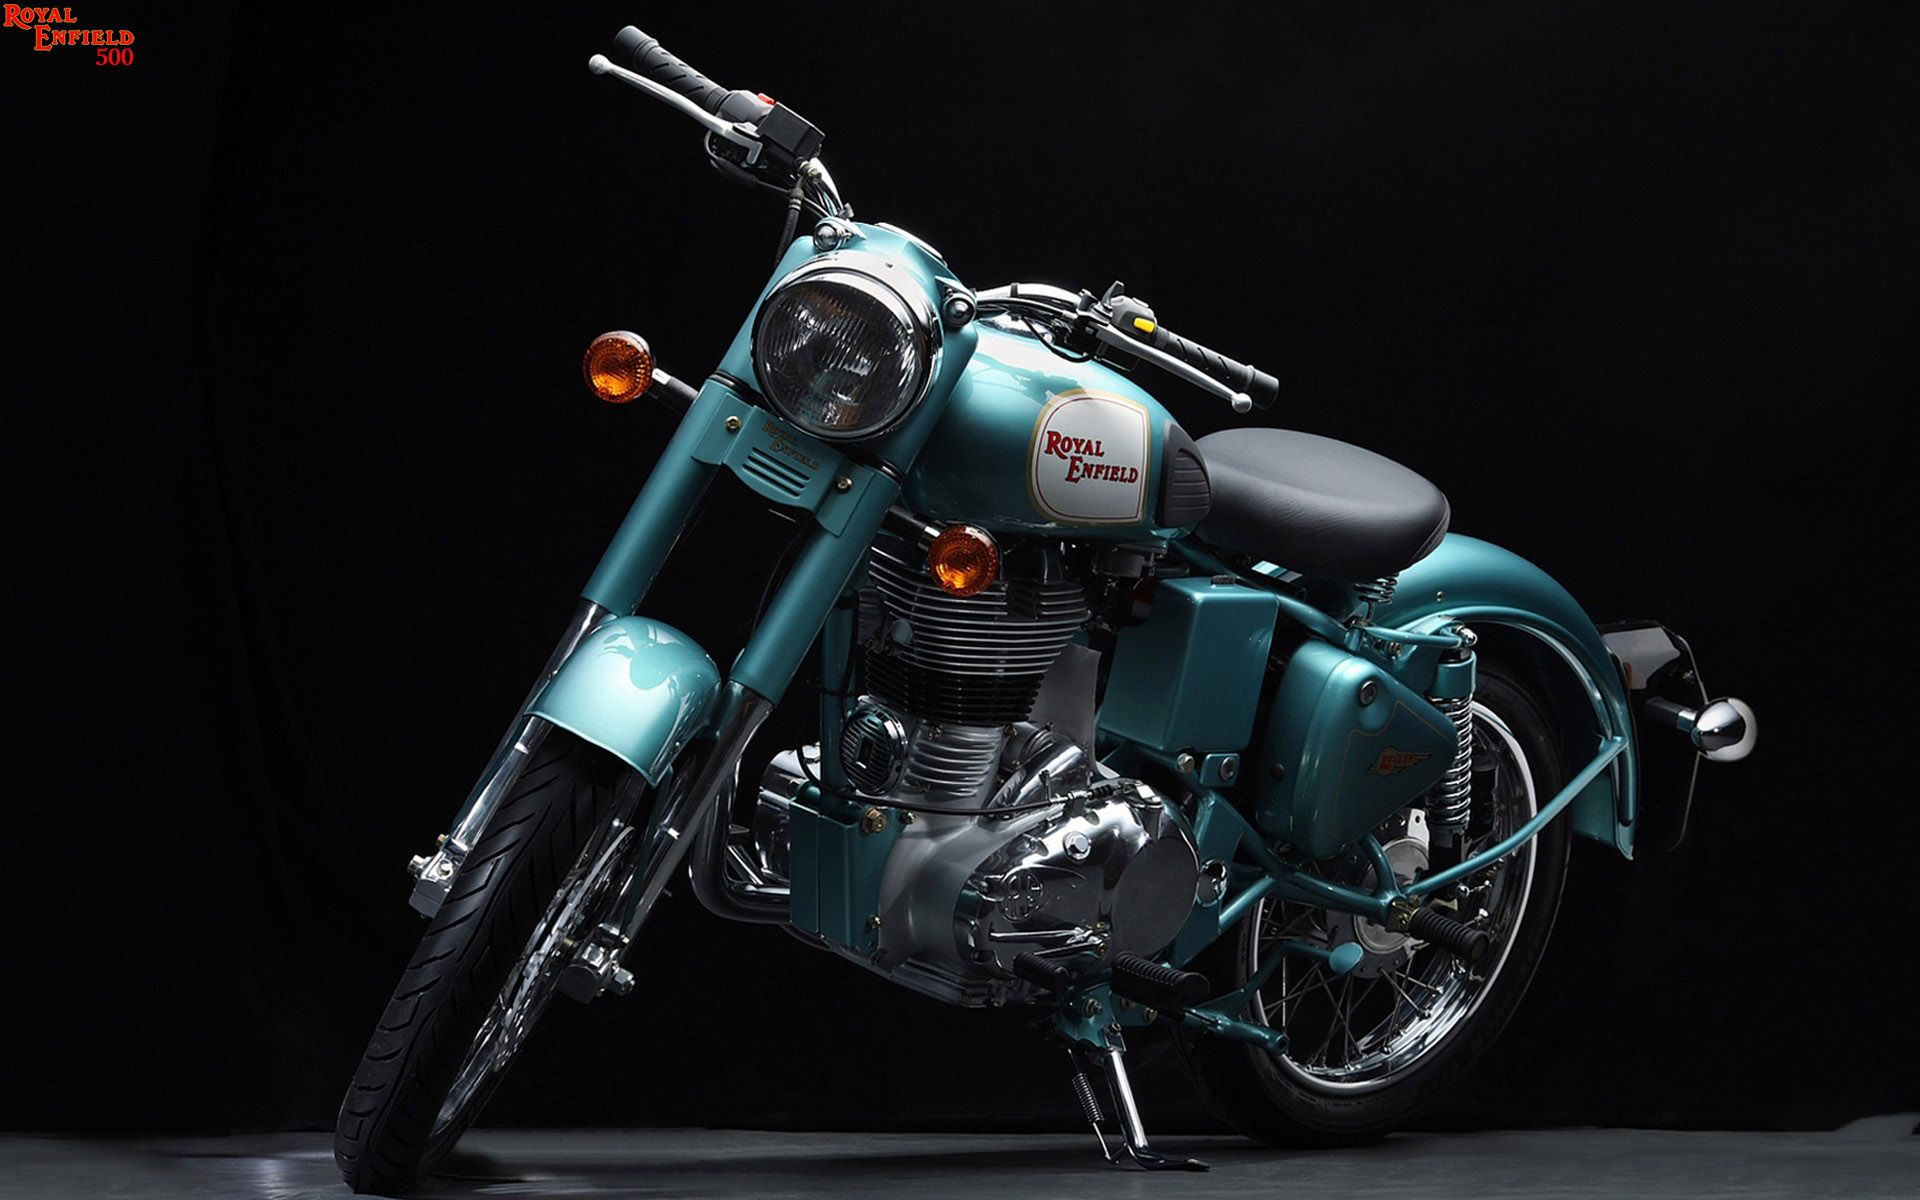 Royal Enfield Classic Hd Pics Hd Wallpaper Royal Enfield Bullet Royal Enfield Wallpapers Enfield Classic